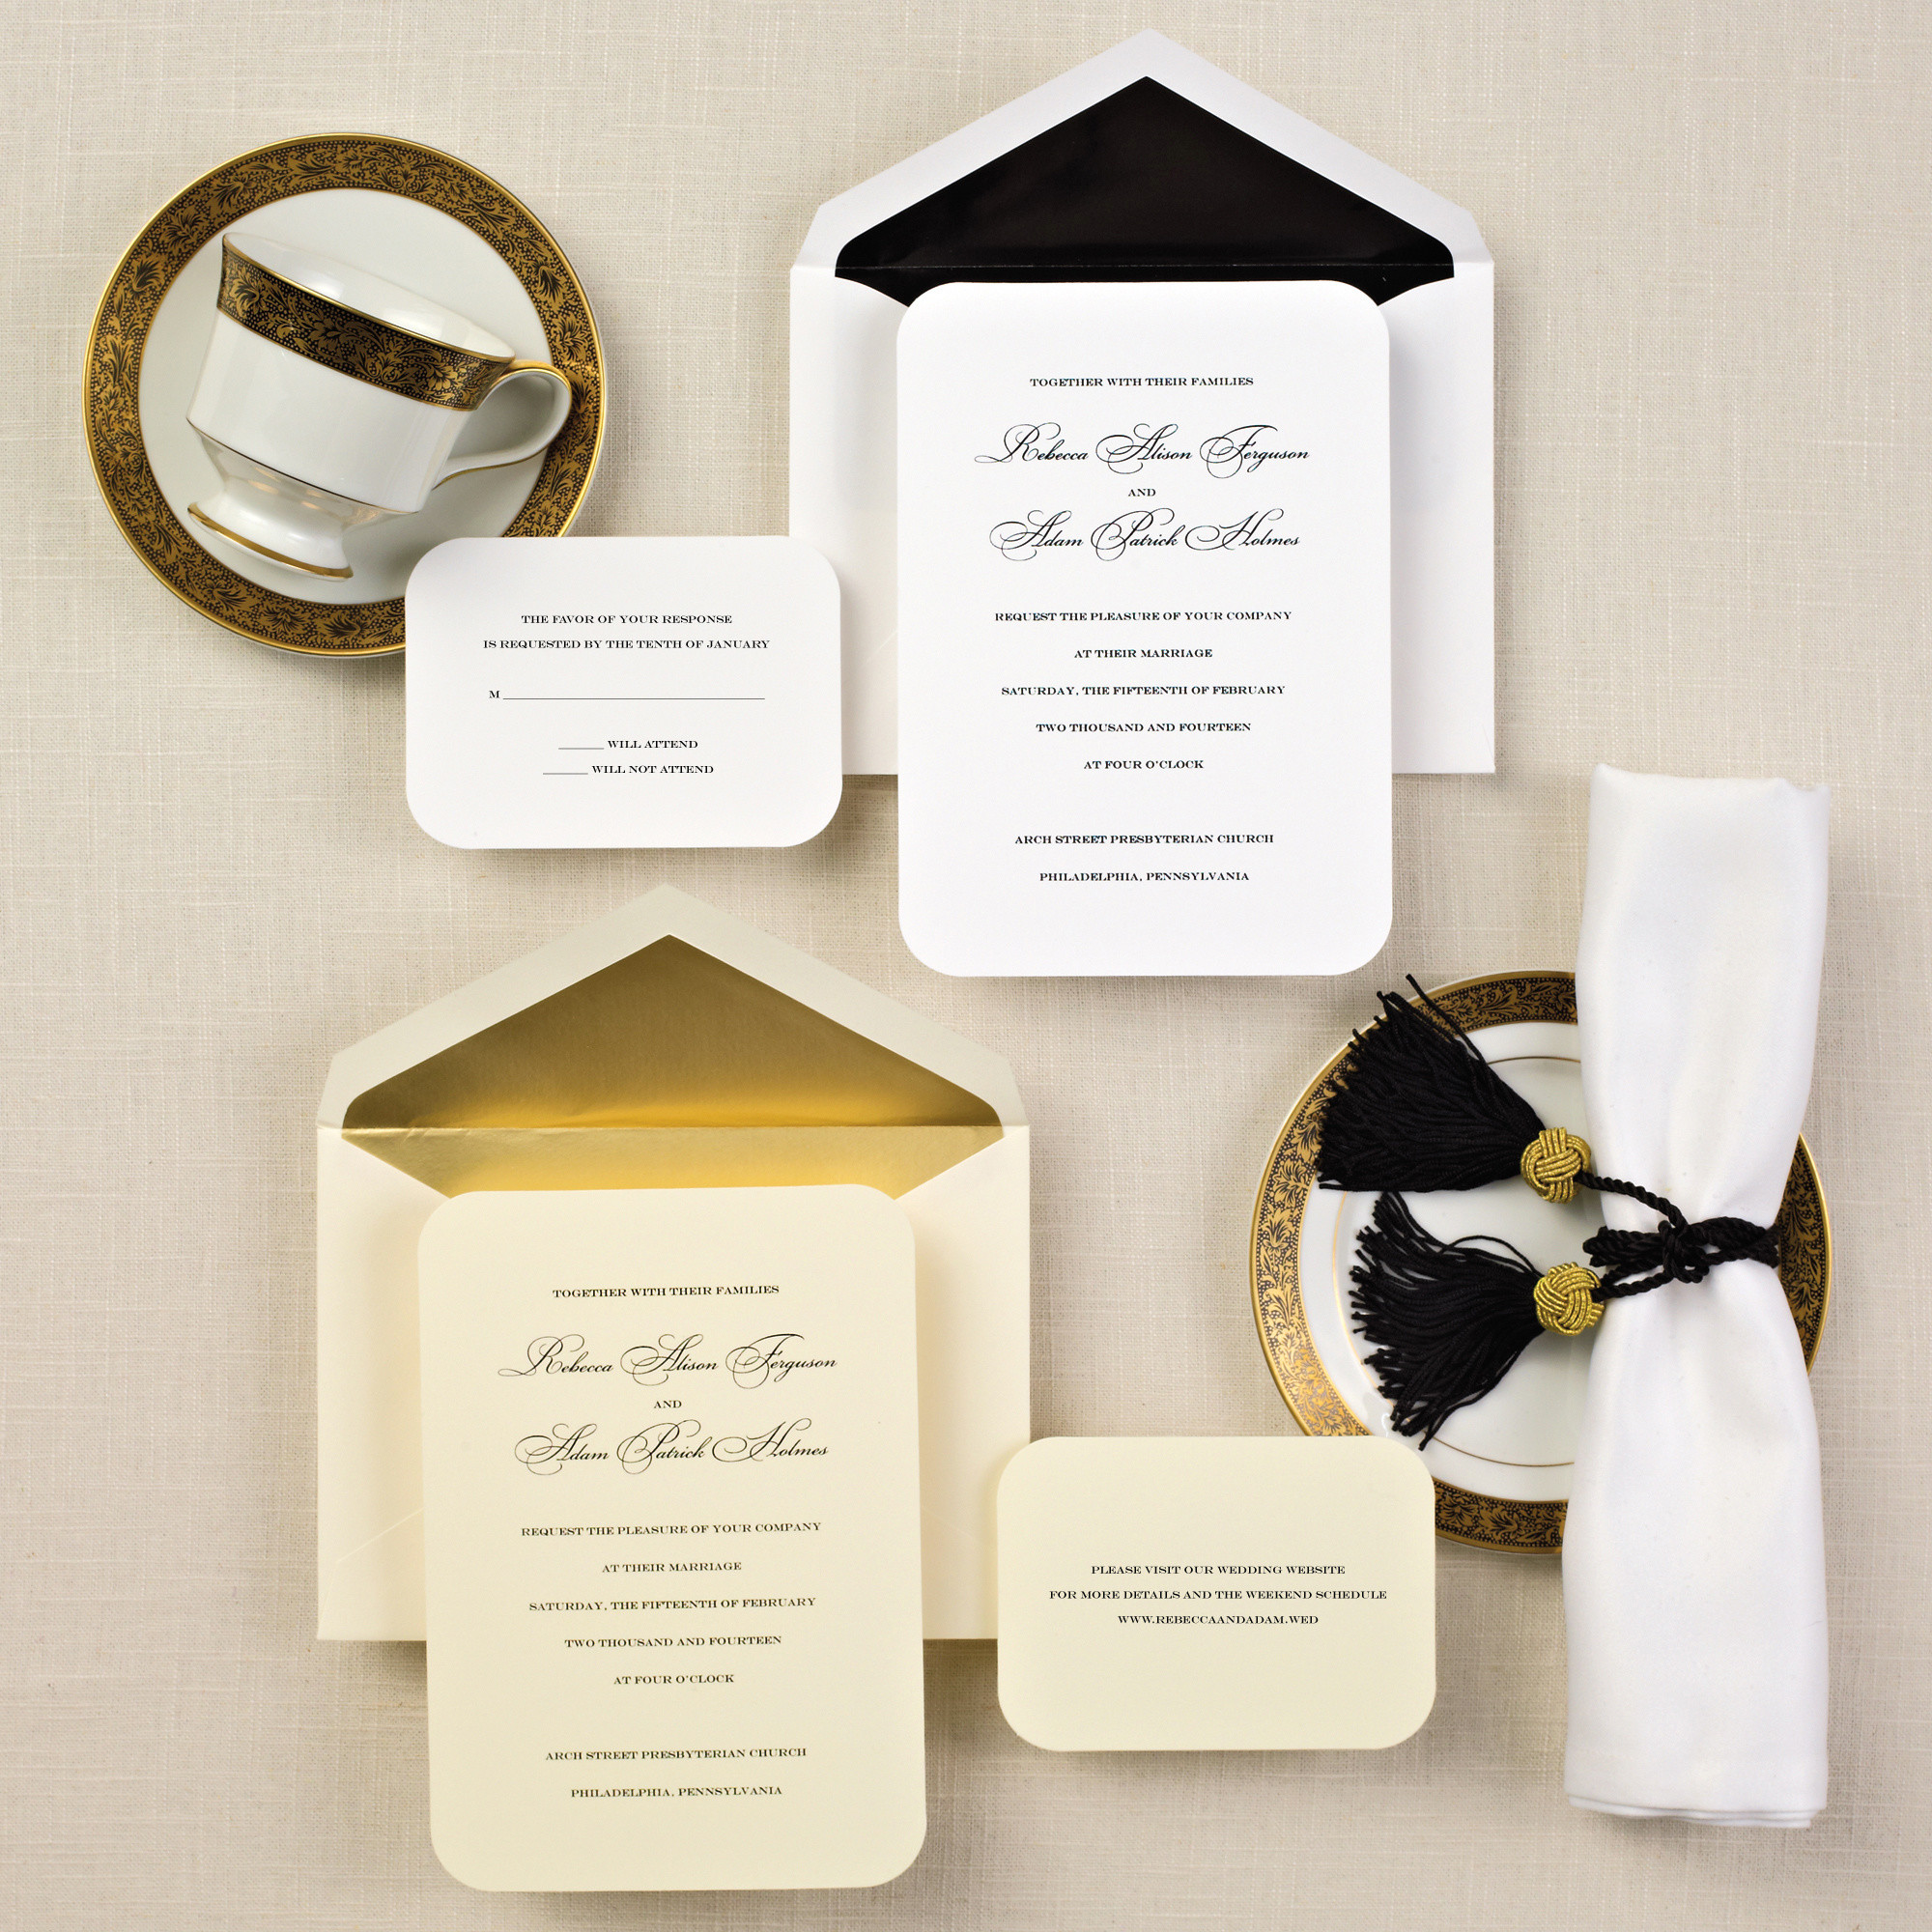 simple elegance wedding invitation classic wedding invitations - Weddings Invitations